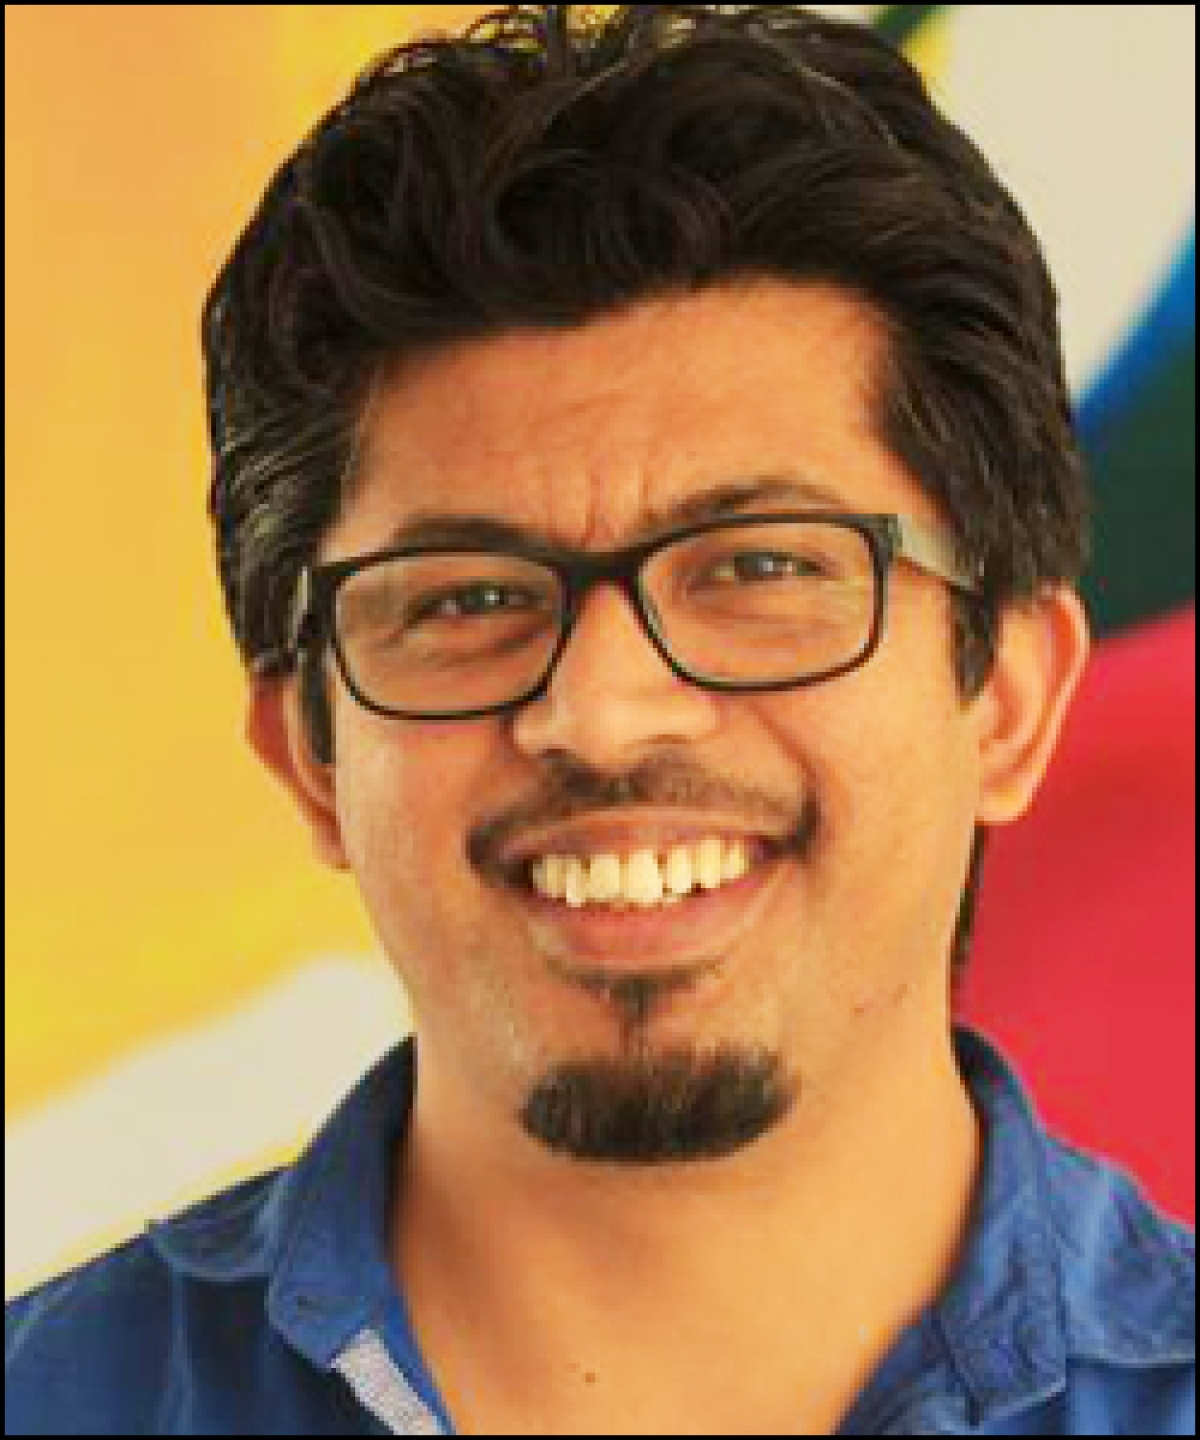 """""""We choose each medium based on the campaign objectives"""": Srivats TS, VP marketing, Swiggy"""